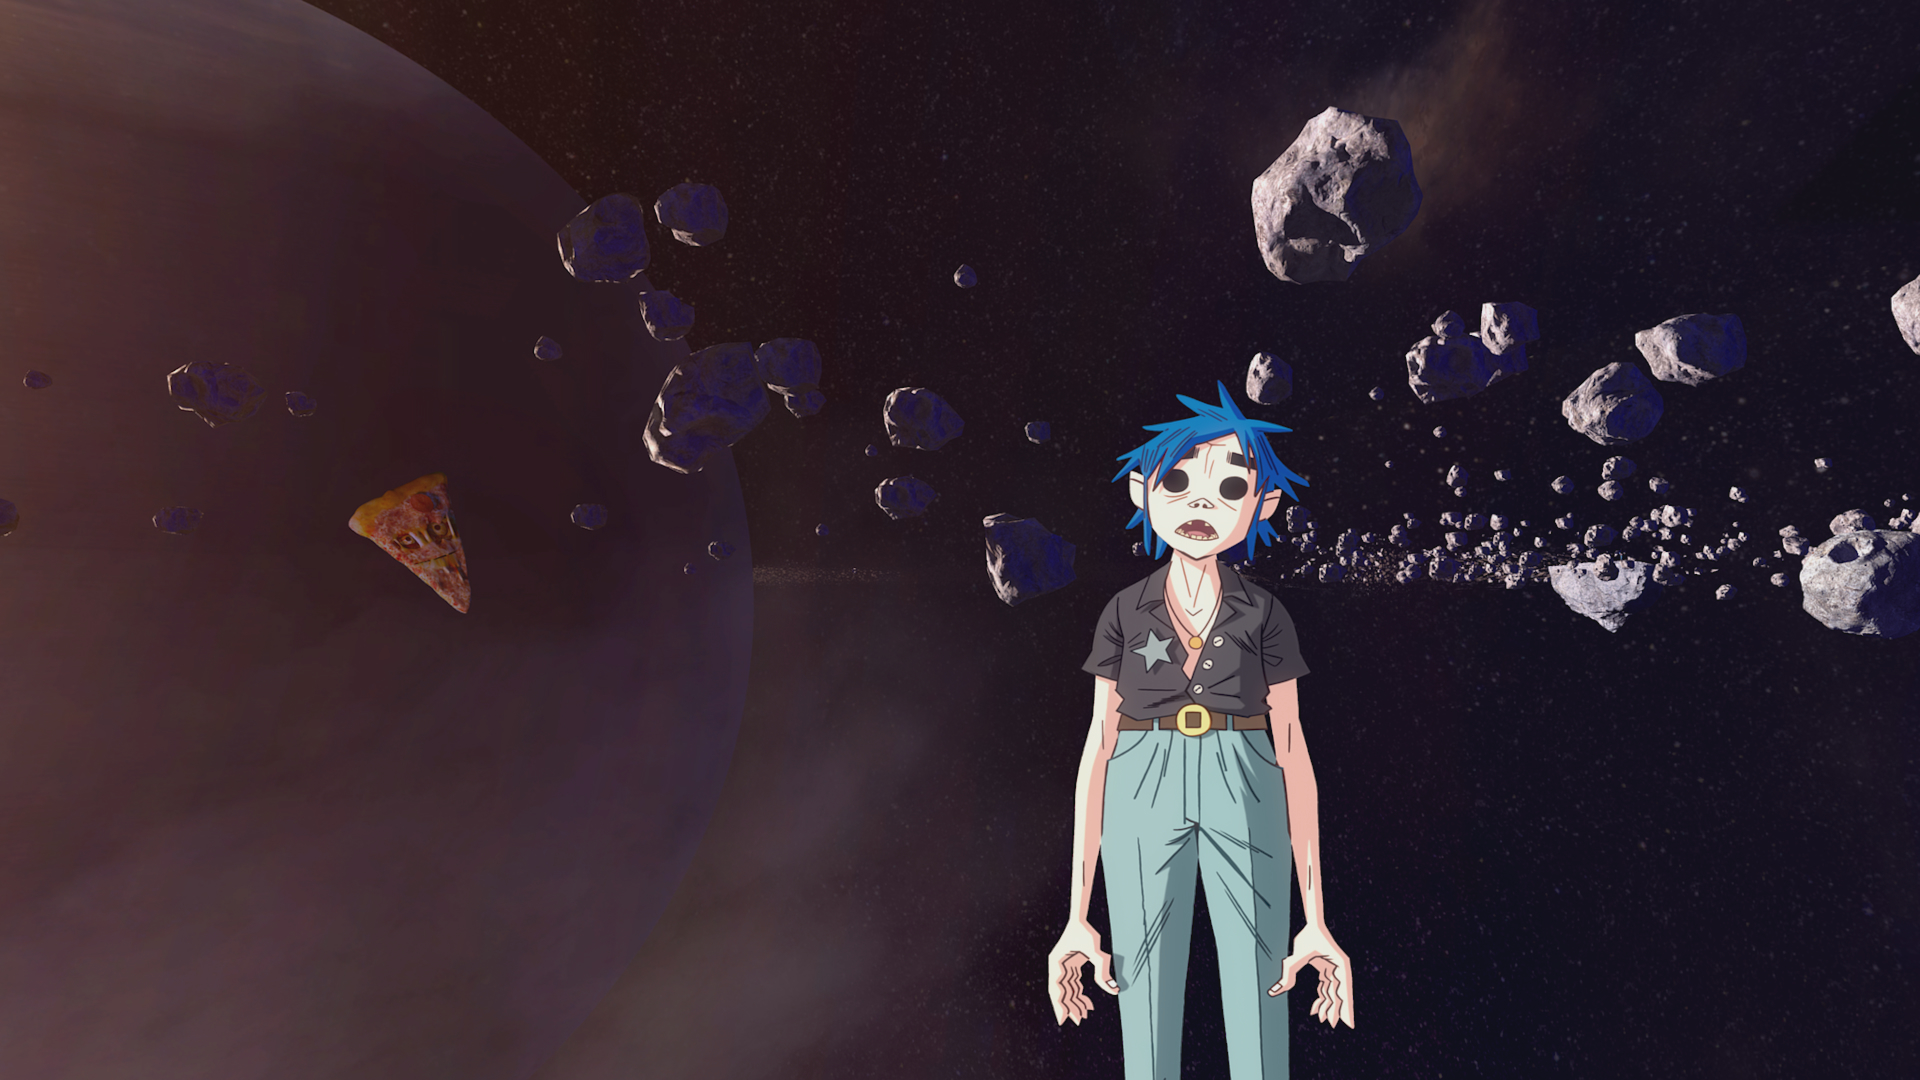 Gorillaz share animated film that features four new tracks